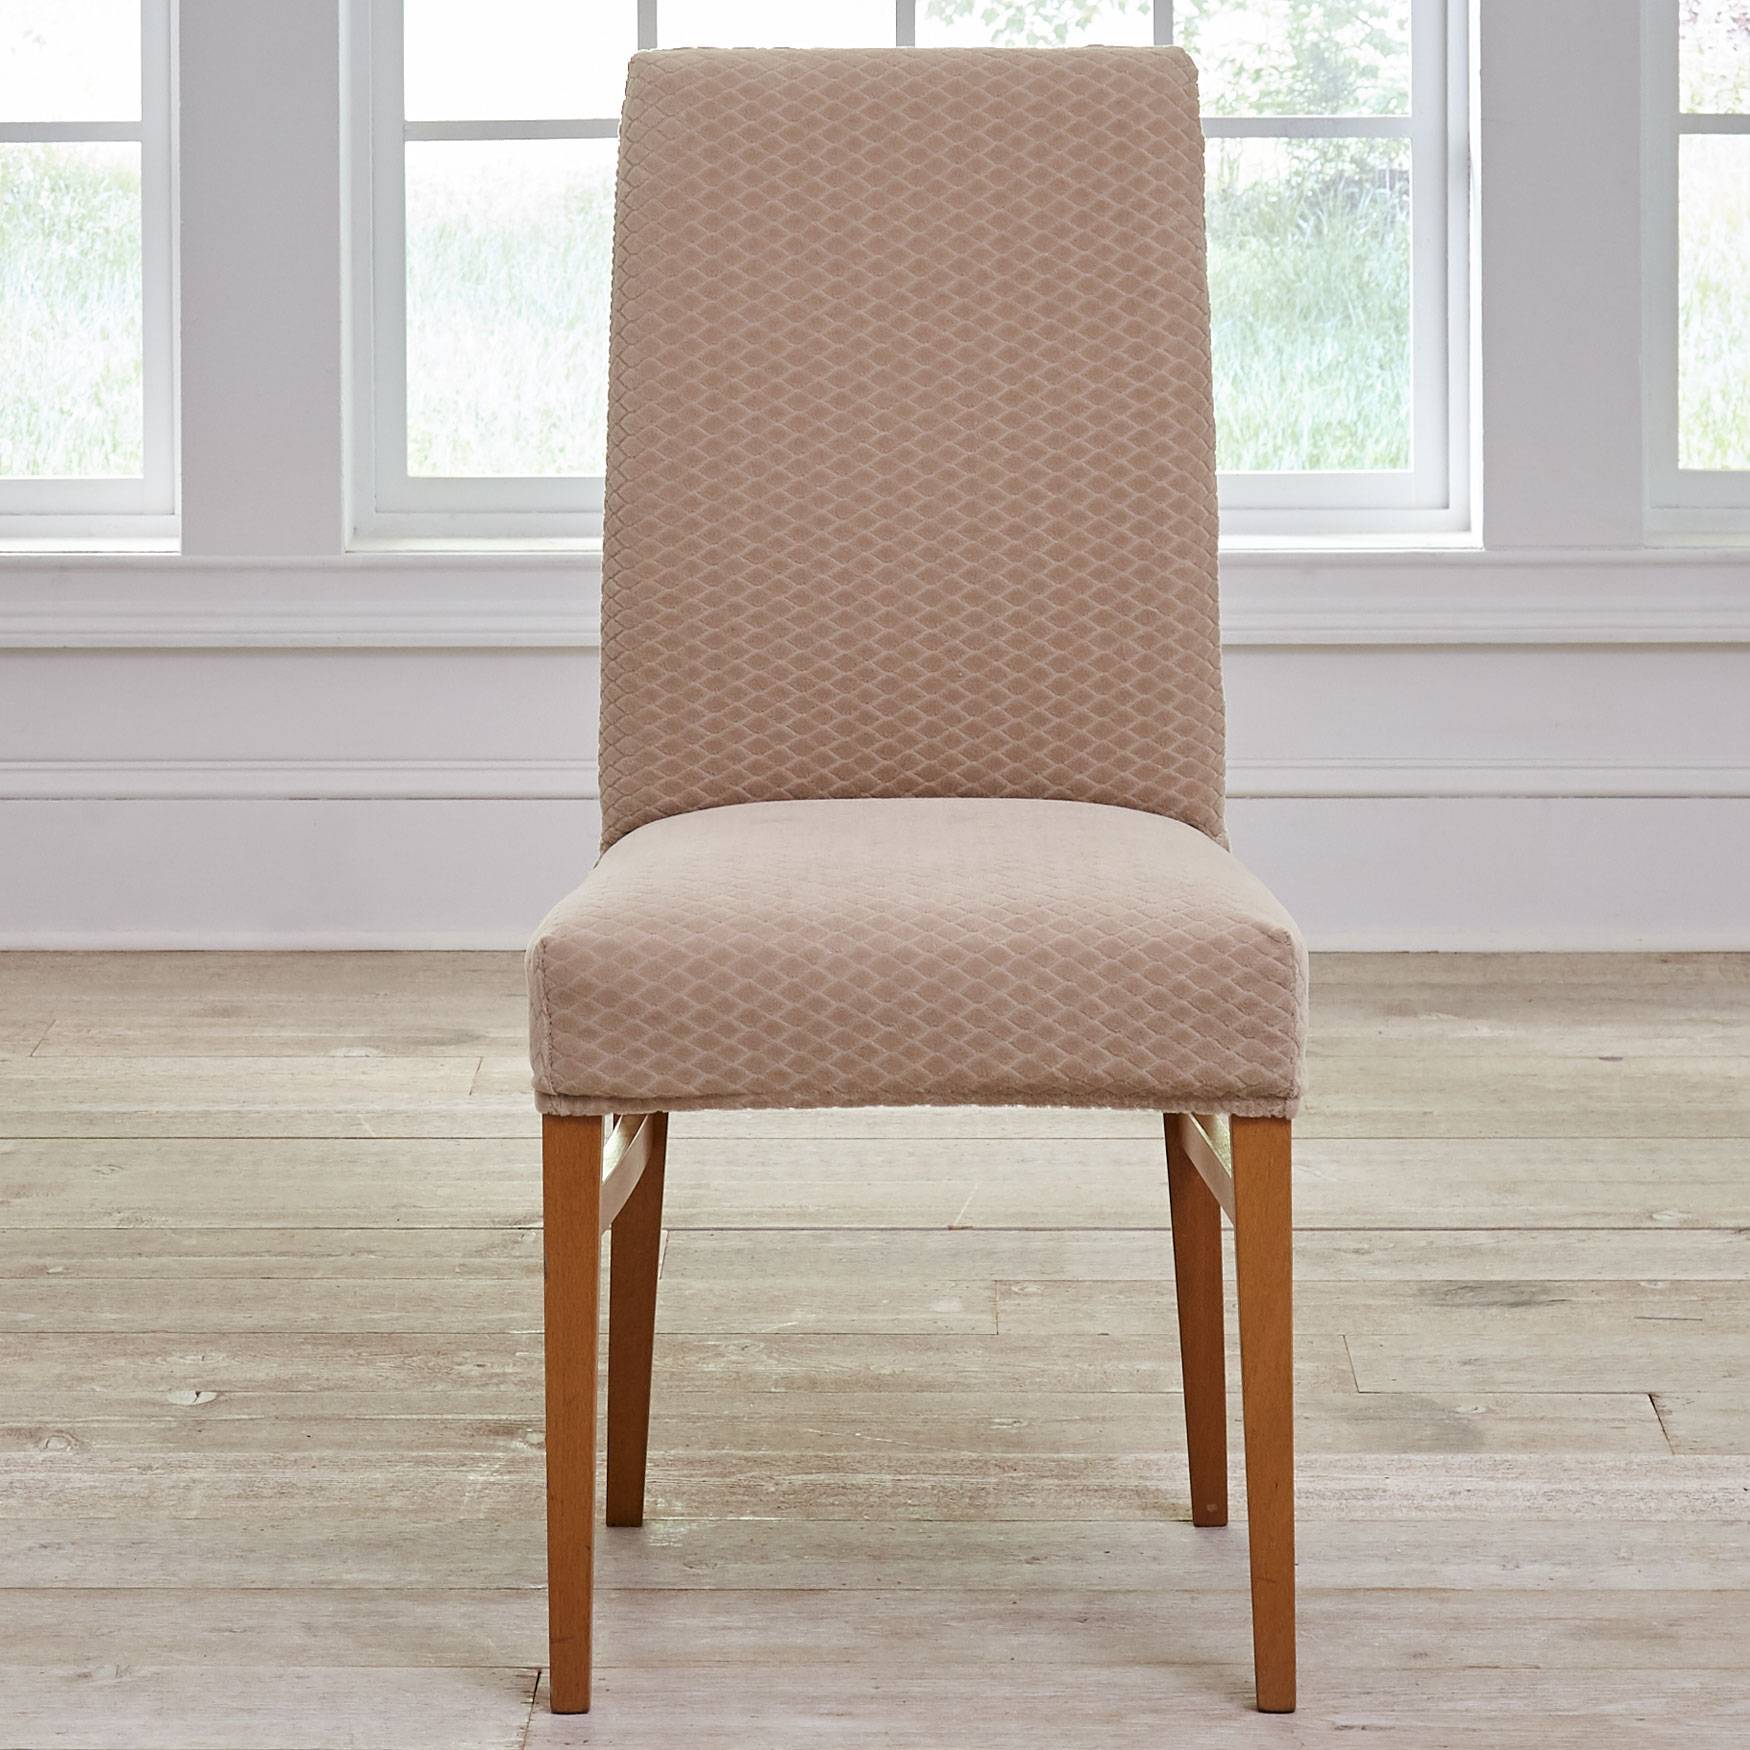 BH Studio® Stretch Diamond Dining Chair Slipcover, LIGHT TAUPE